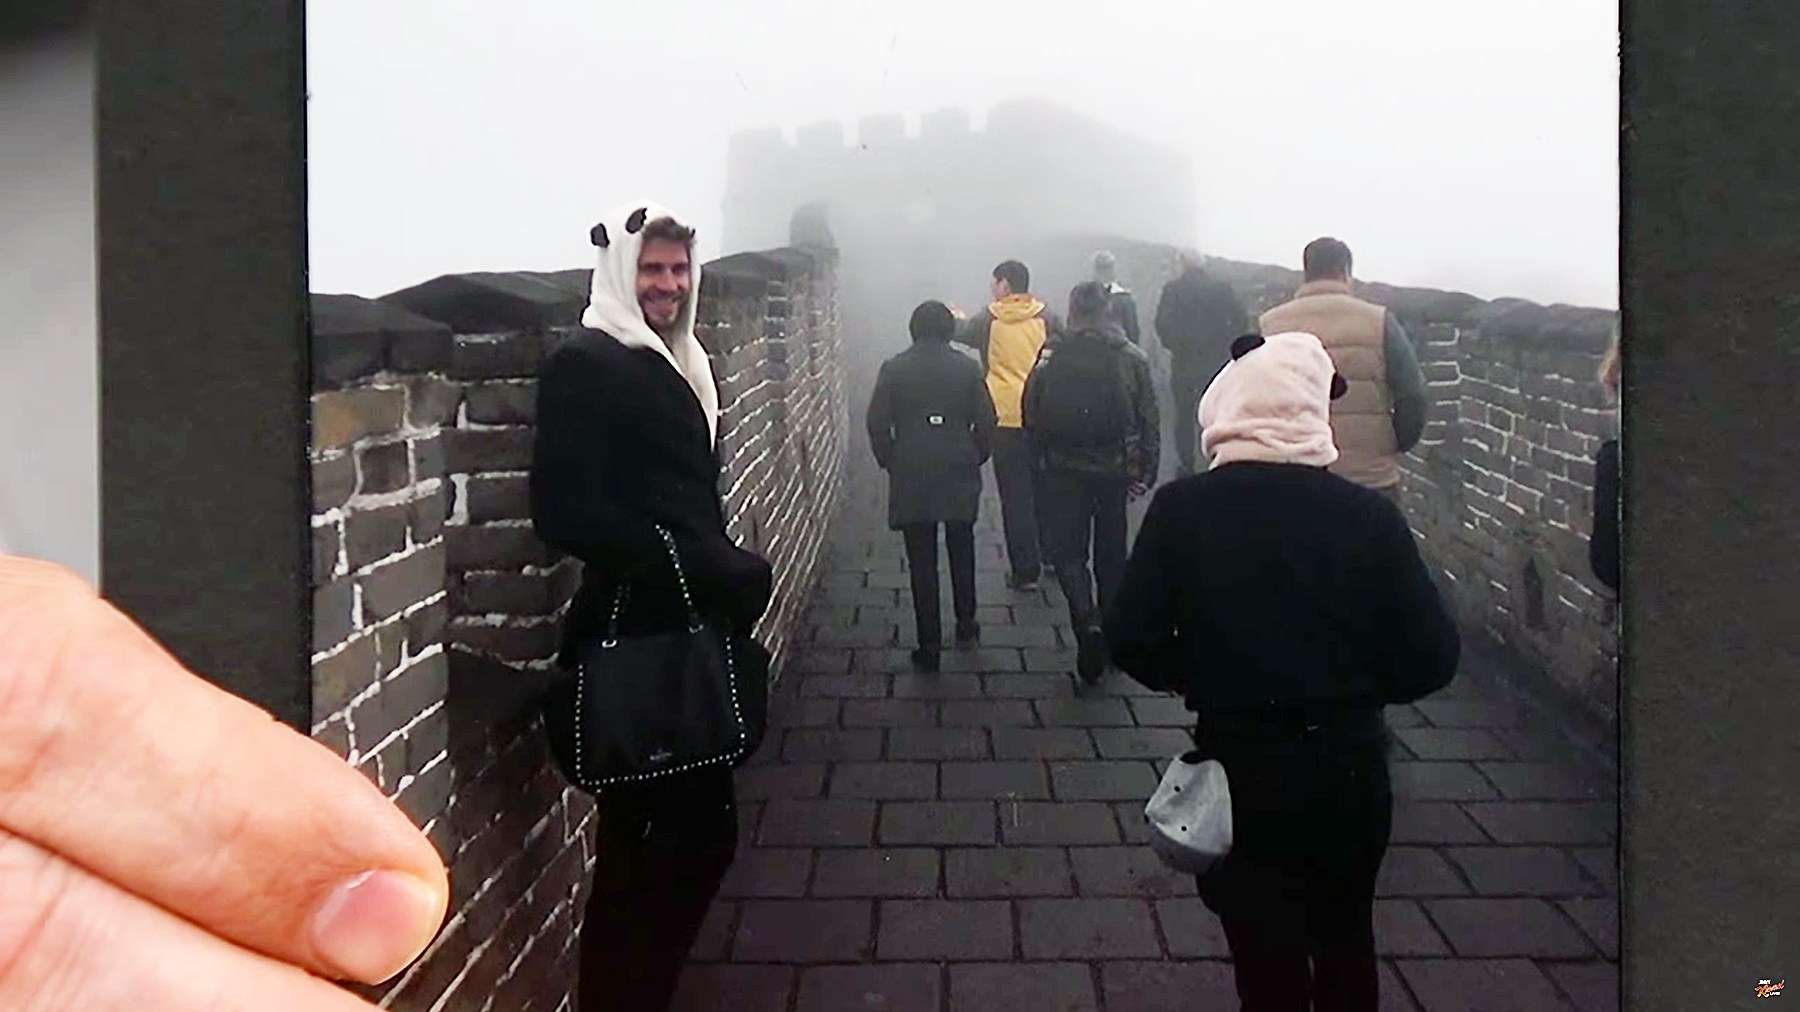 Liam Hemsworth at the Great Wall of China